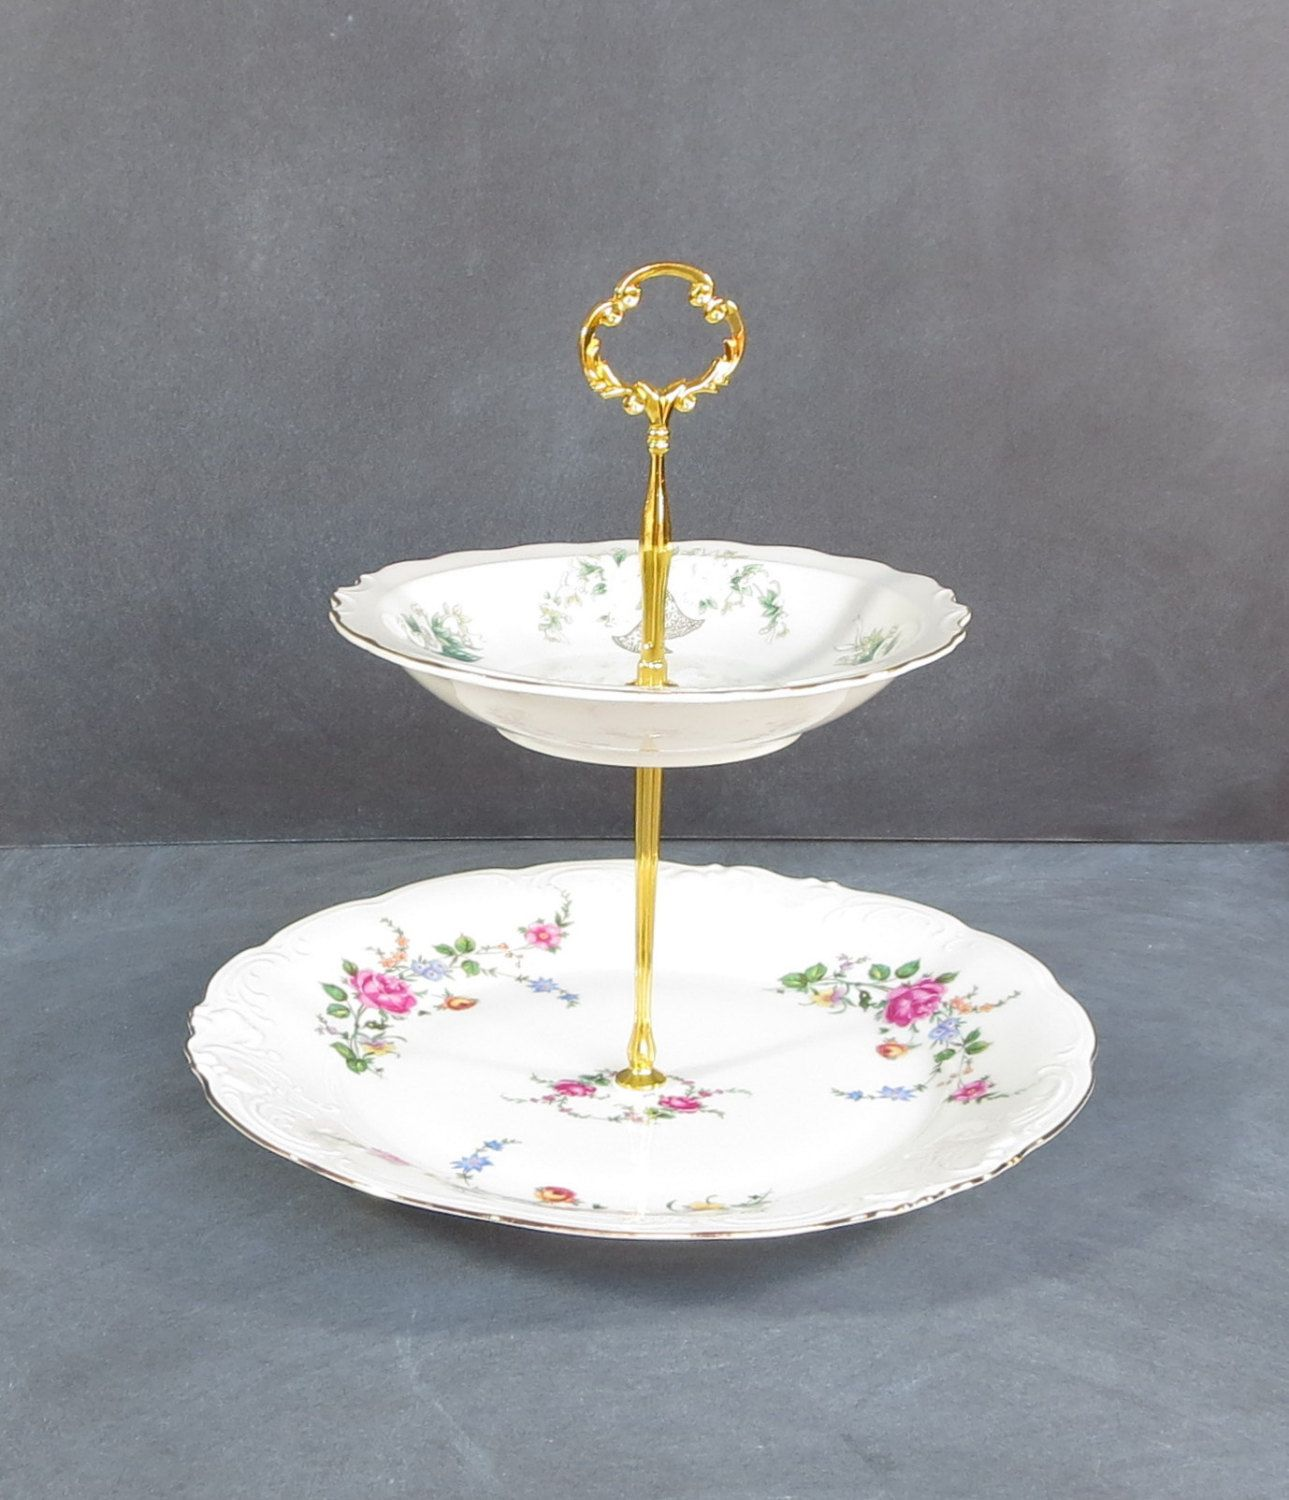 Anniversary Cake Plate Two Tier Plate Stand | Floral Mismatched China with Gold trim and & Anniversary Cake Plate Two Tier Plate Stand | Floral Mismatched ...